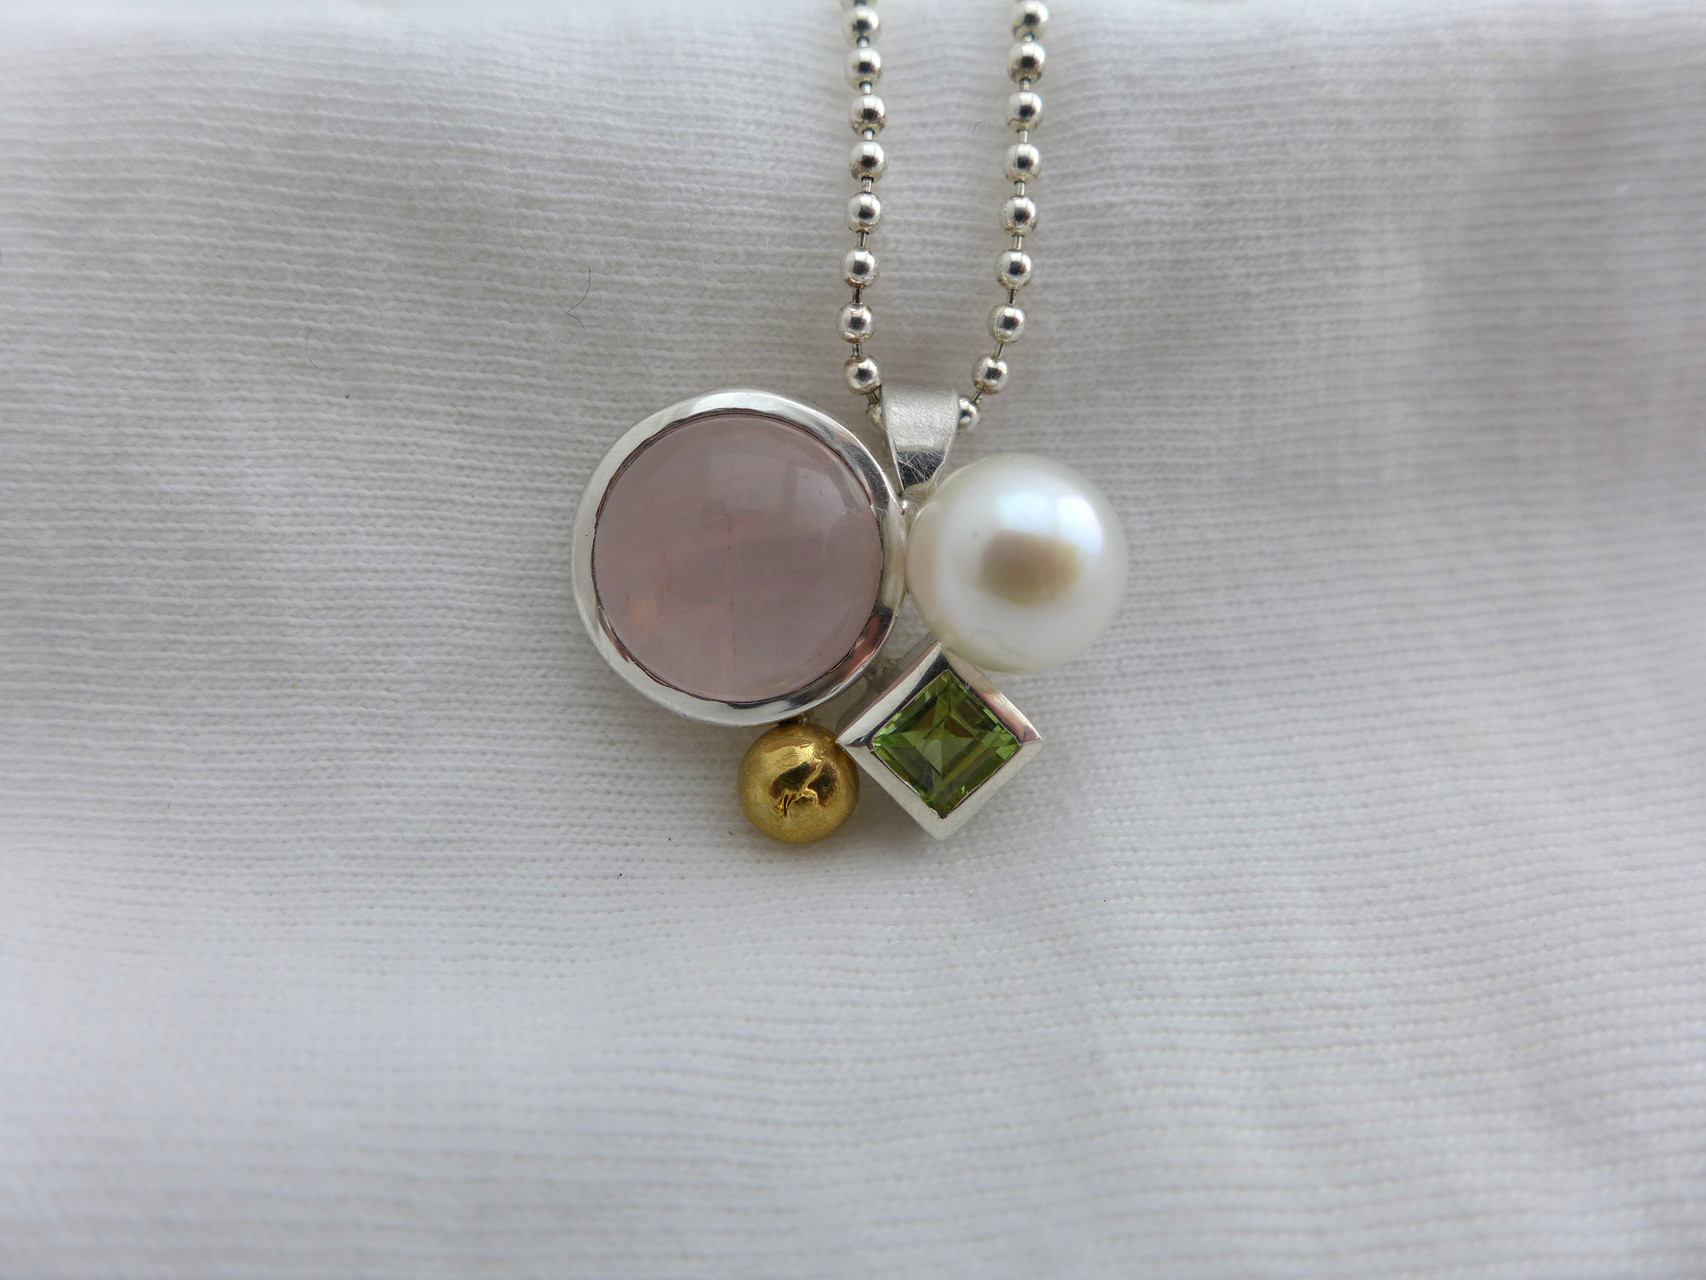 Pendant, sterling silver, fine silver, pink quartz, peridot, freshwater pearl and fine gold nugget